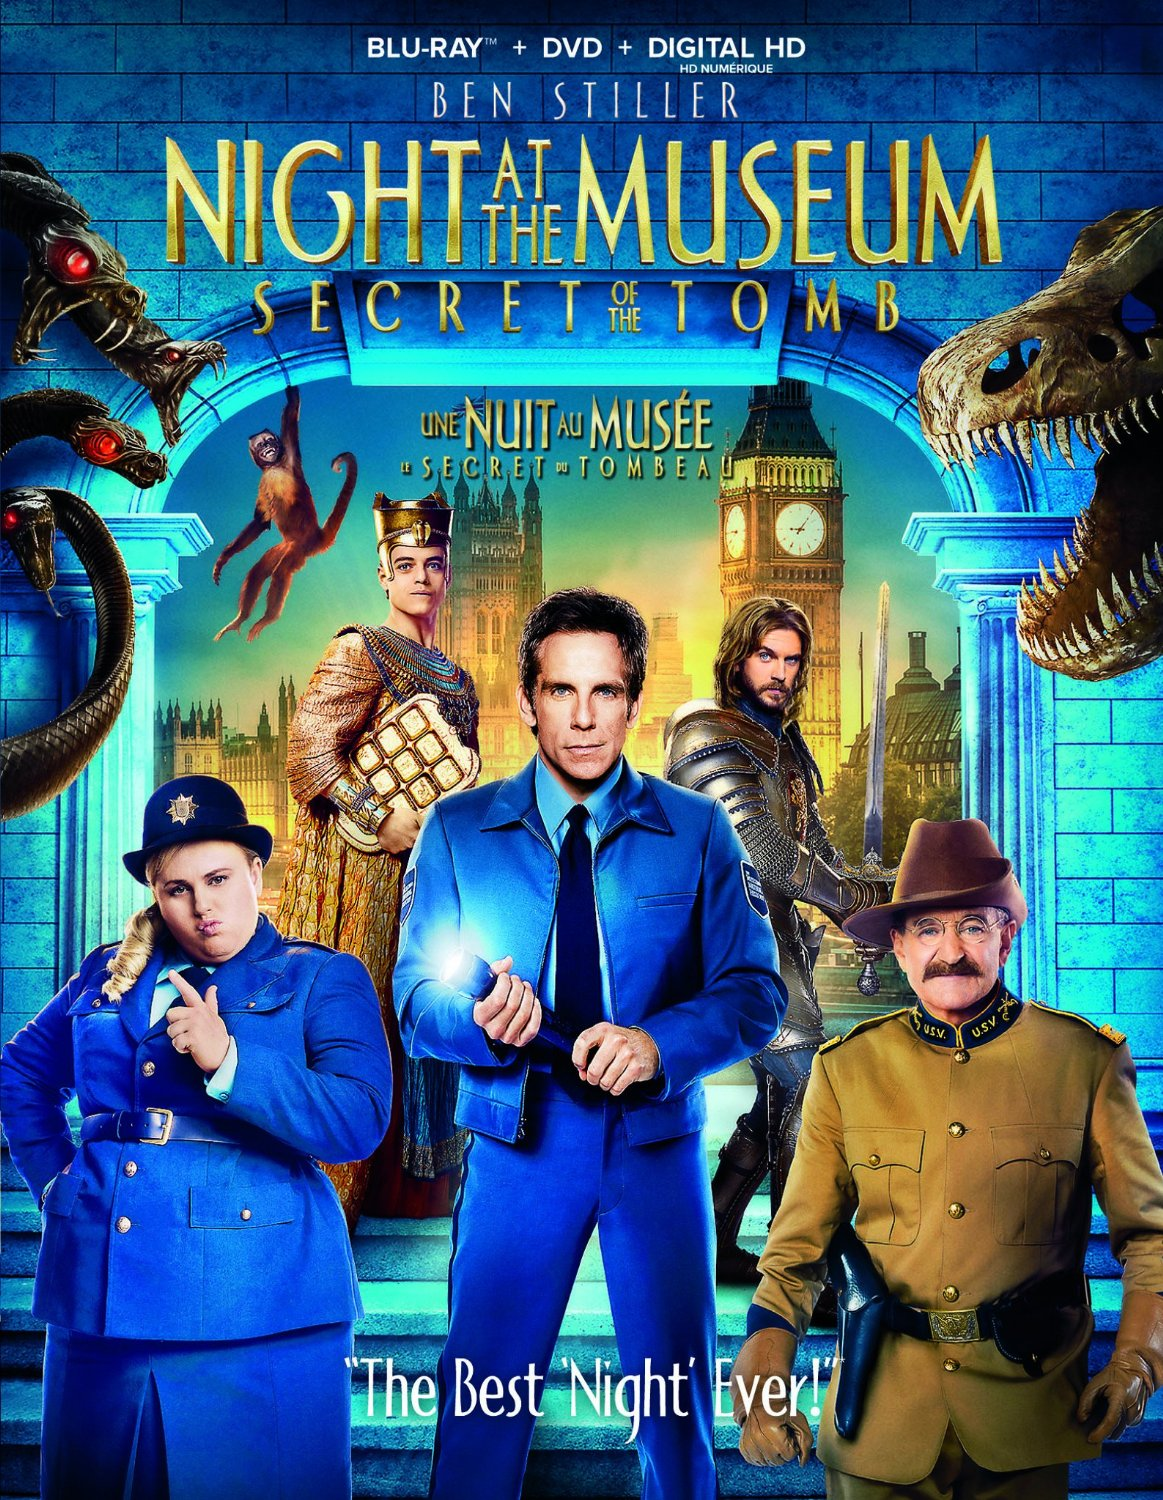 night at the museum: secret of the tomb – blu-ray/dvd combo – orcasound